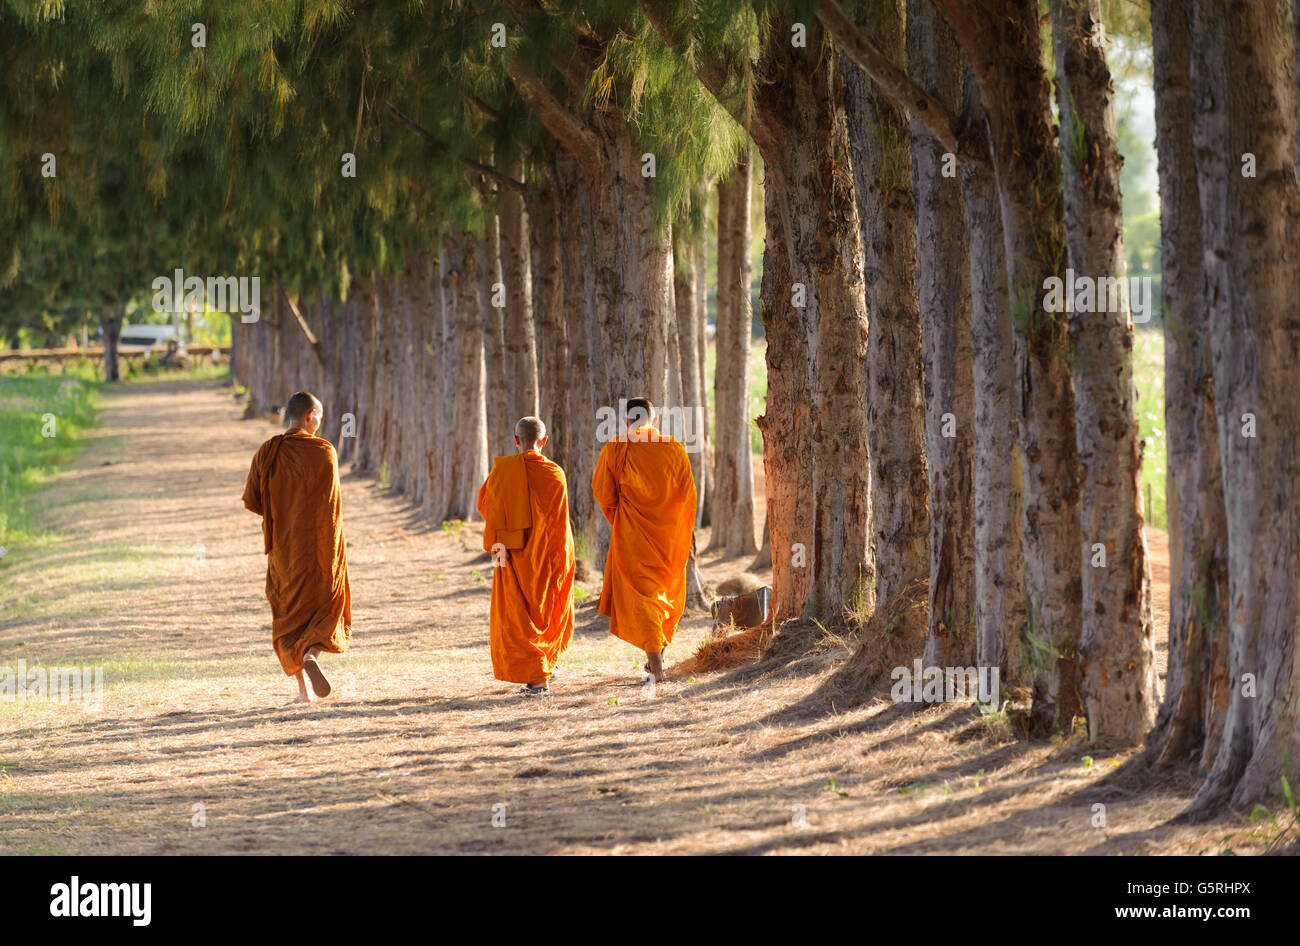 Buddhist monk travel pine forest in Thailand Stock Photo